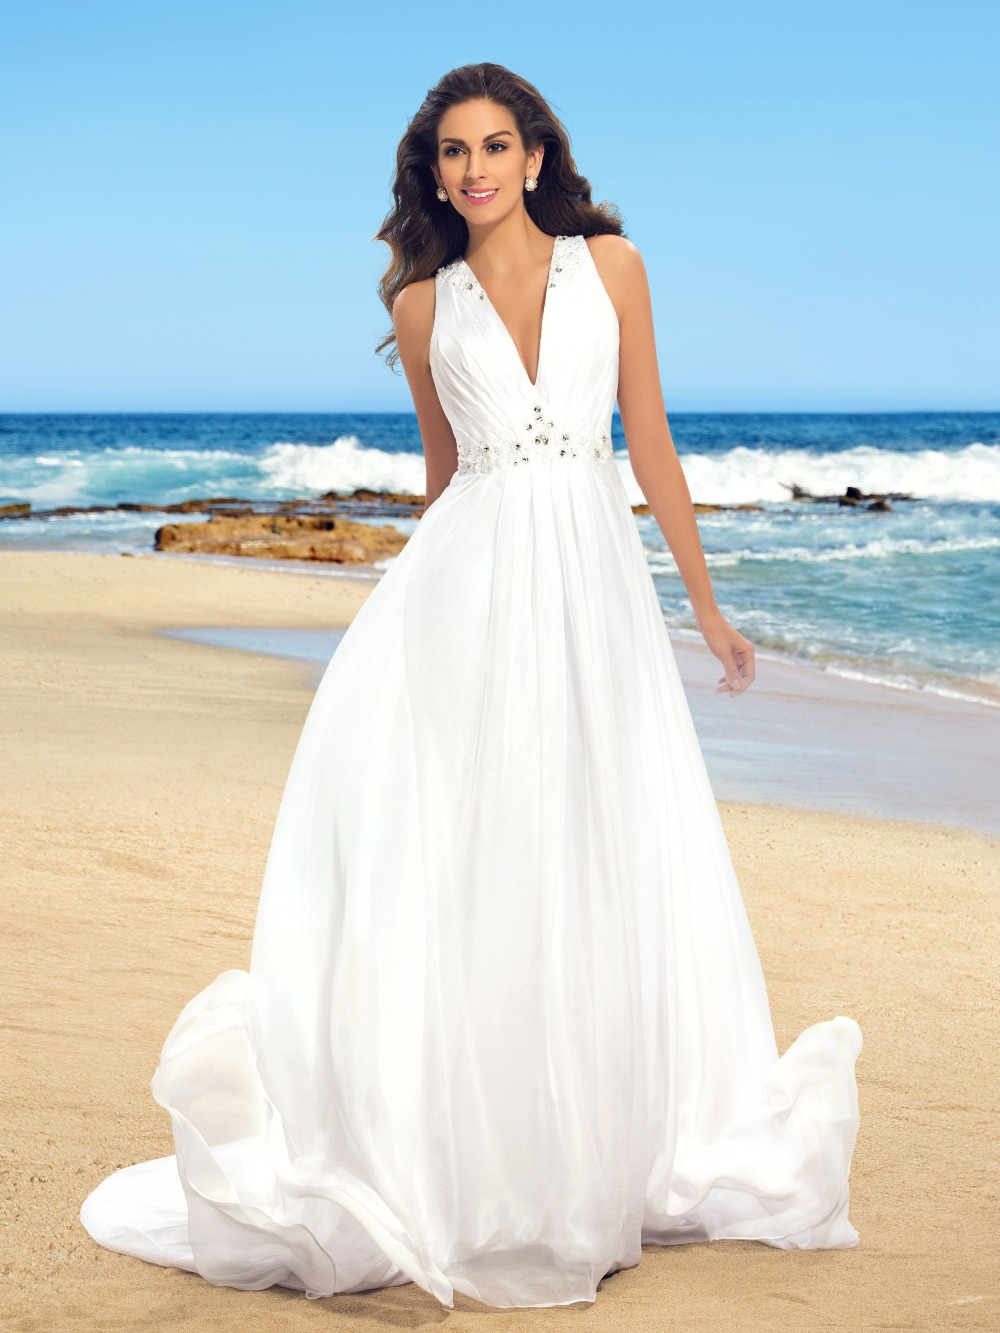 Summer style beach boho wedding dresses 2016 cheap flutter for Summer dresses for weddings